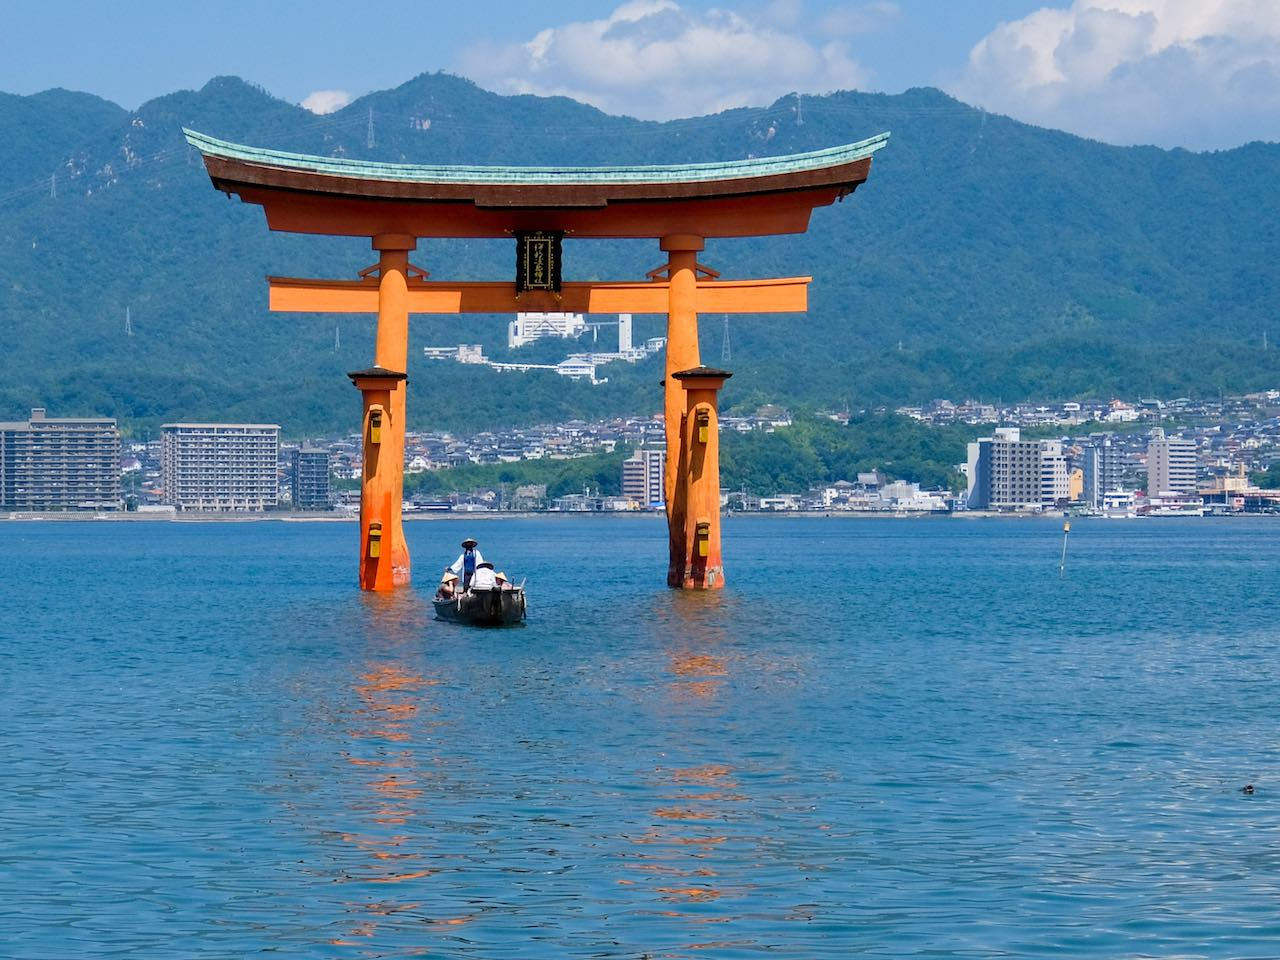 Itsukushima Shrine : Torii Gate with pilgrims